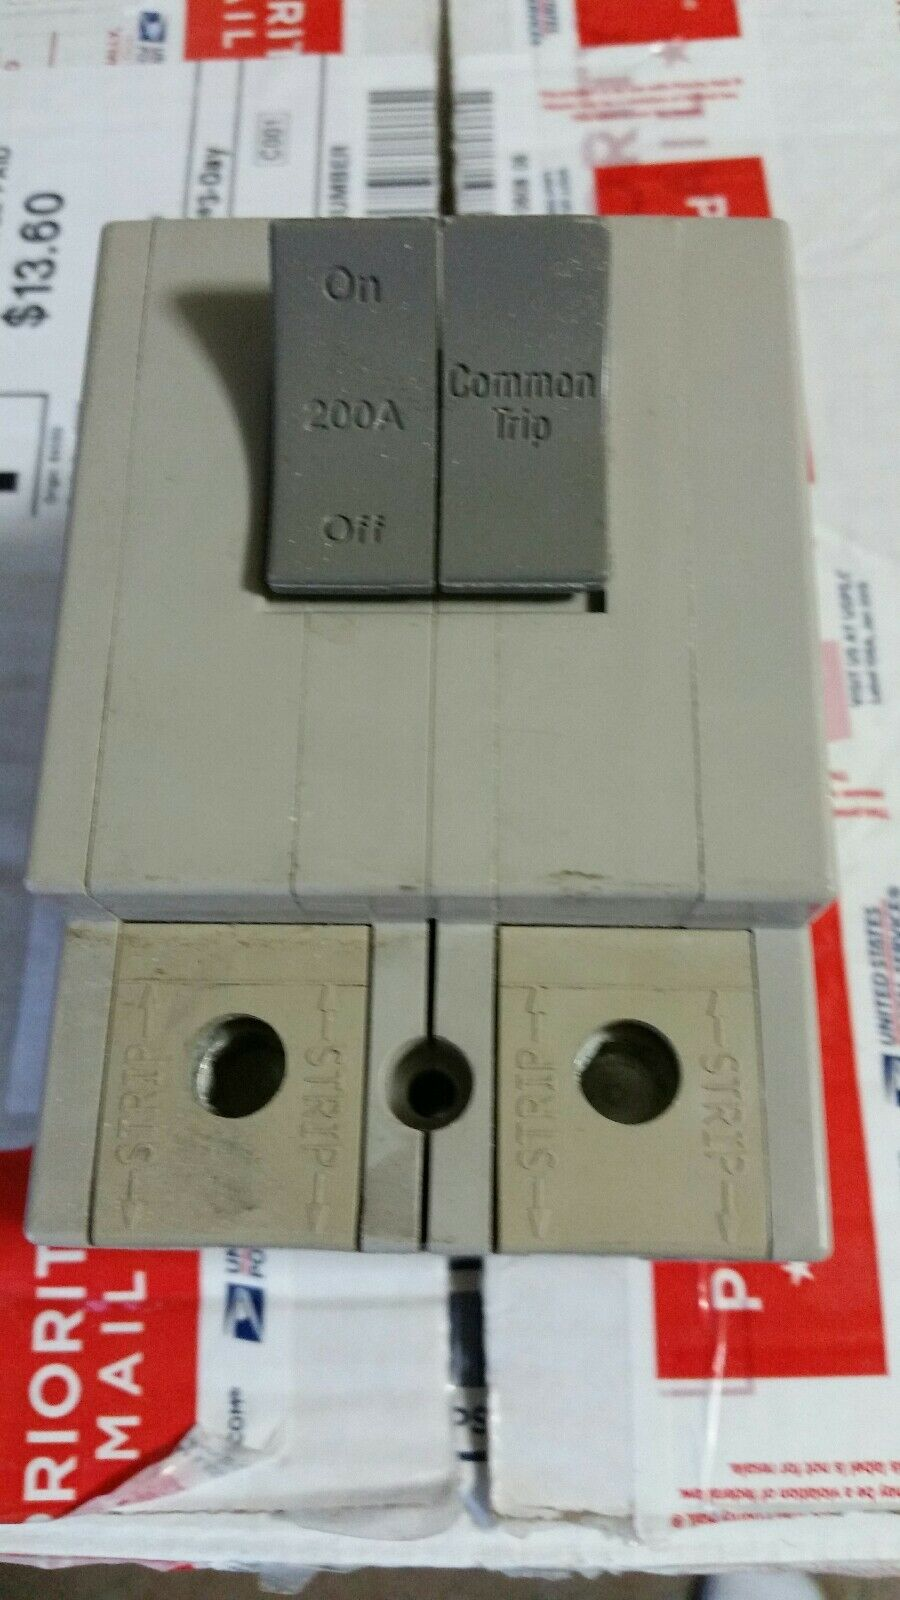 Square D Trilliant Sdt 2200 200 Amp Double Pole Main Circuit Breaker Home Residential Zinsco Type R38 1 Of 5only Available See More